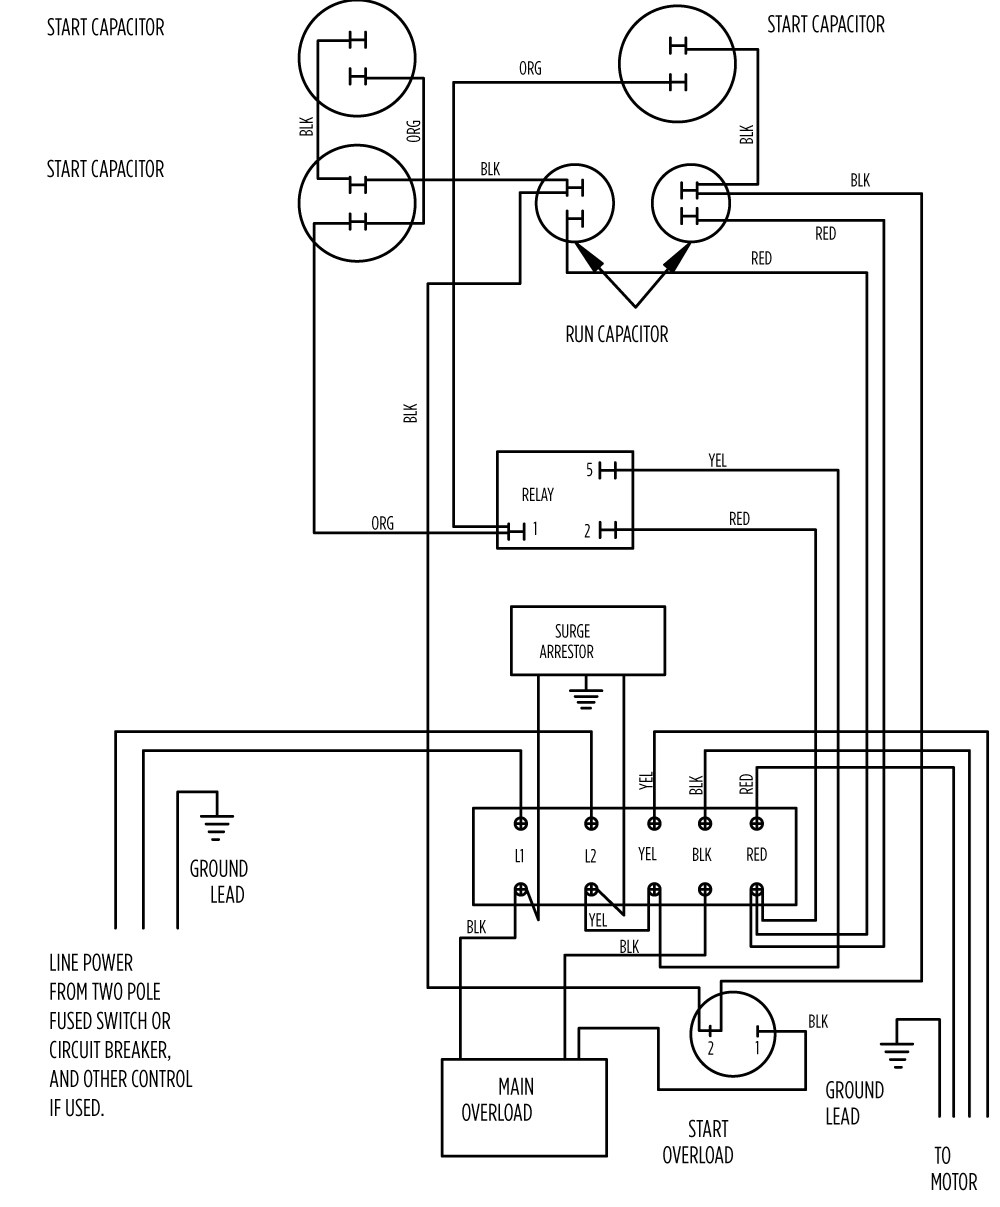 10 hp standard 282 202 9210 or 282 202 9230_aim gallery?format=jpg&quality=80 aim manual page 57 single phase motors and controls motor electric motor wiring diagram at reclaimingppi.co